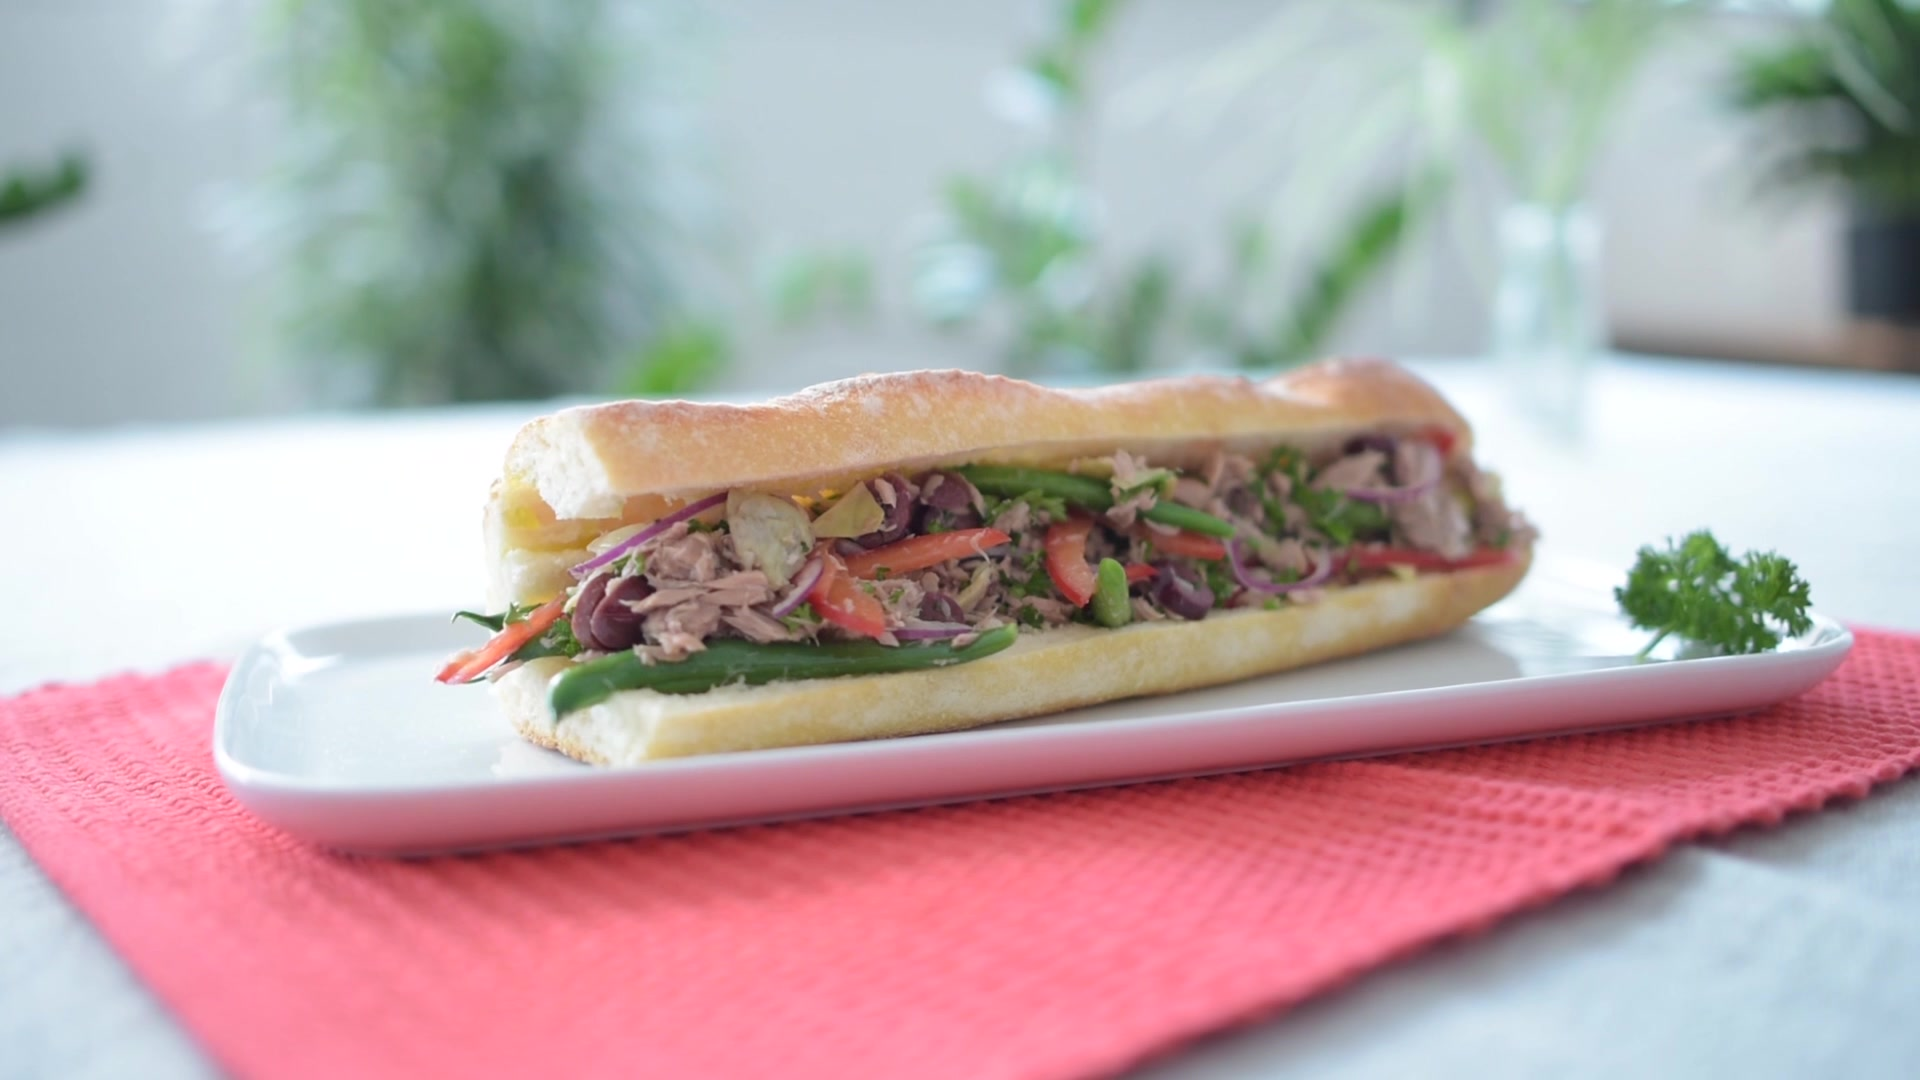 How to Make a Nicoise Tuna Baguette